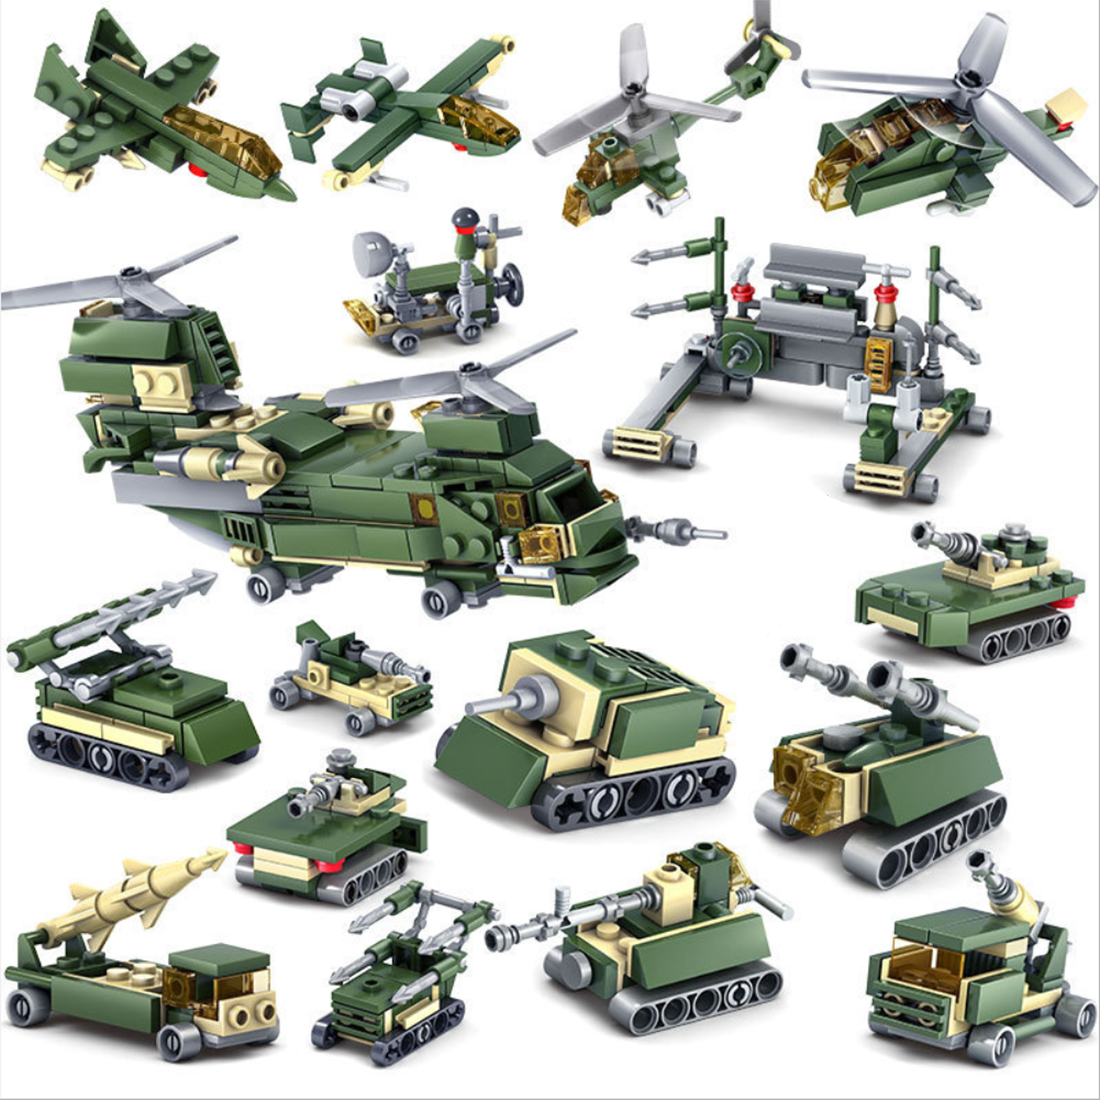 448Pcs 16-in-1 Military Field Troop STEM Bricks Small Particle Building Blocks Educational Toy Set image